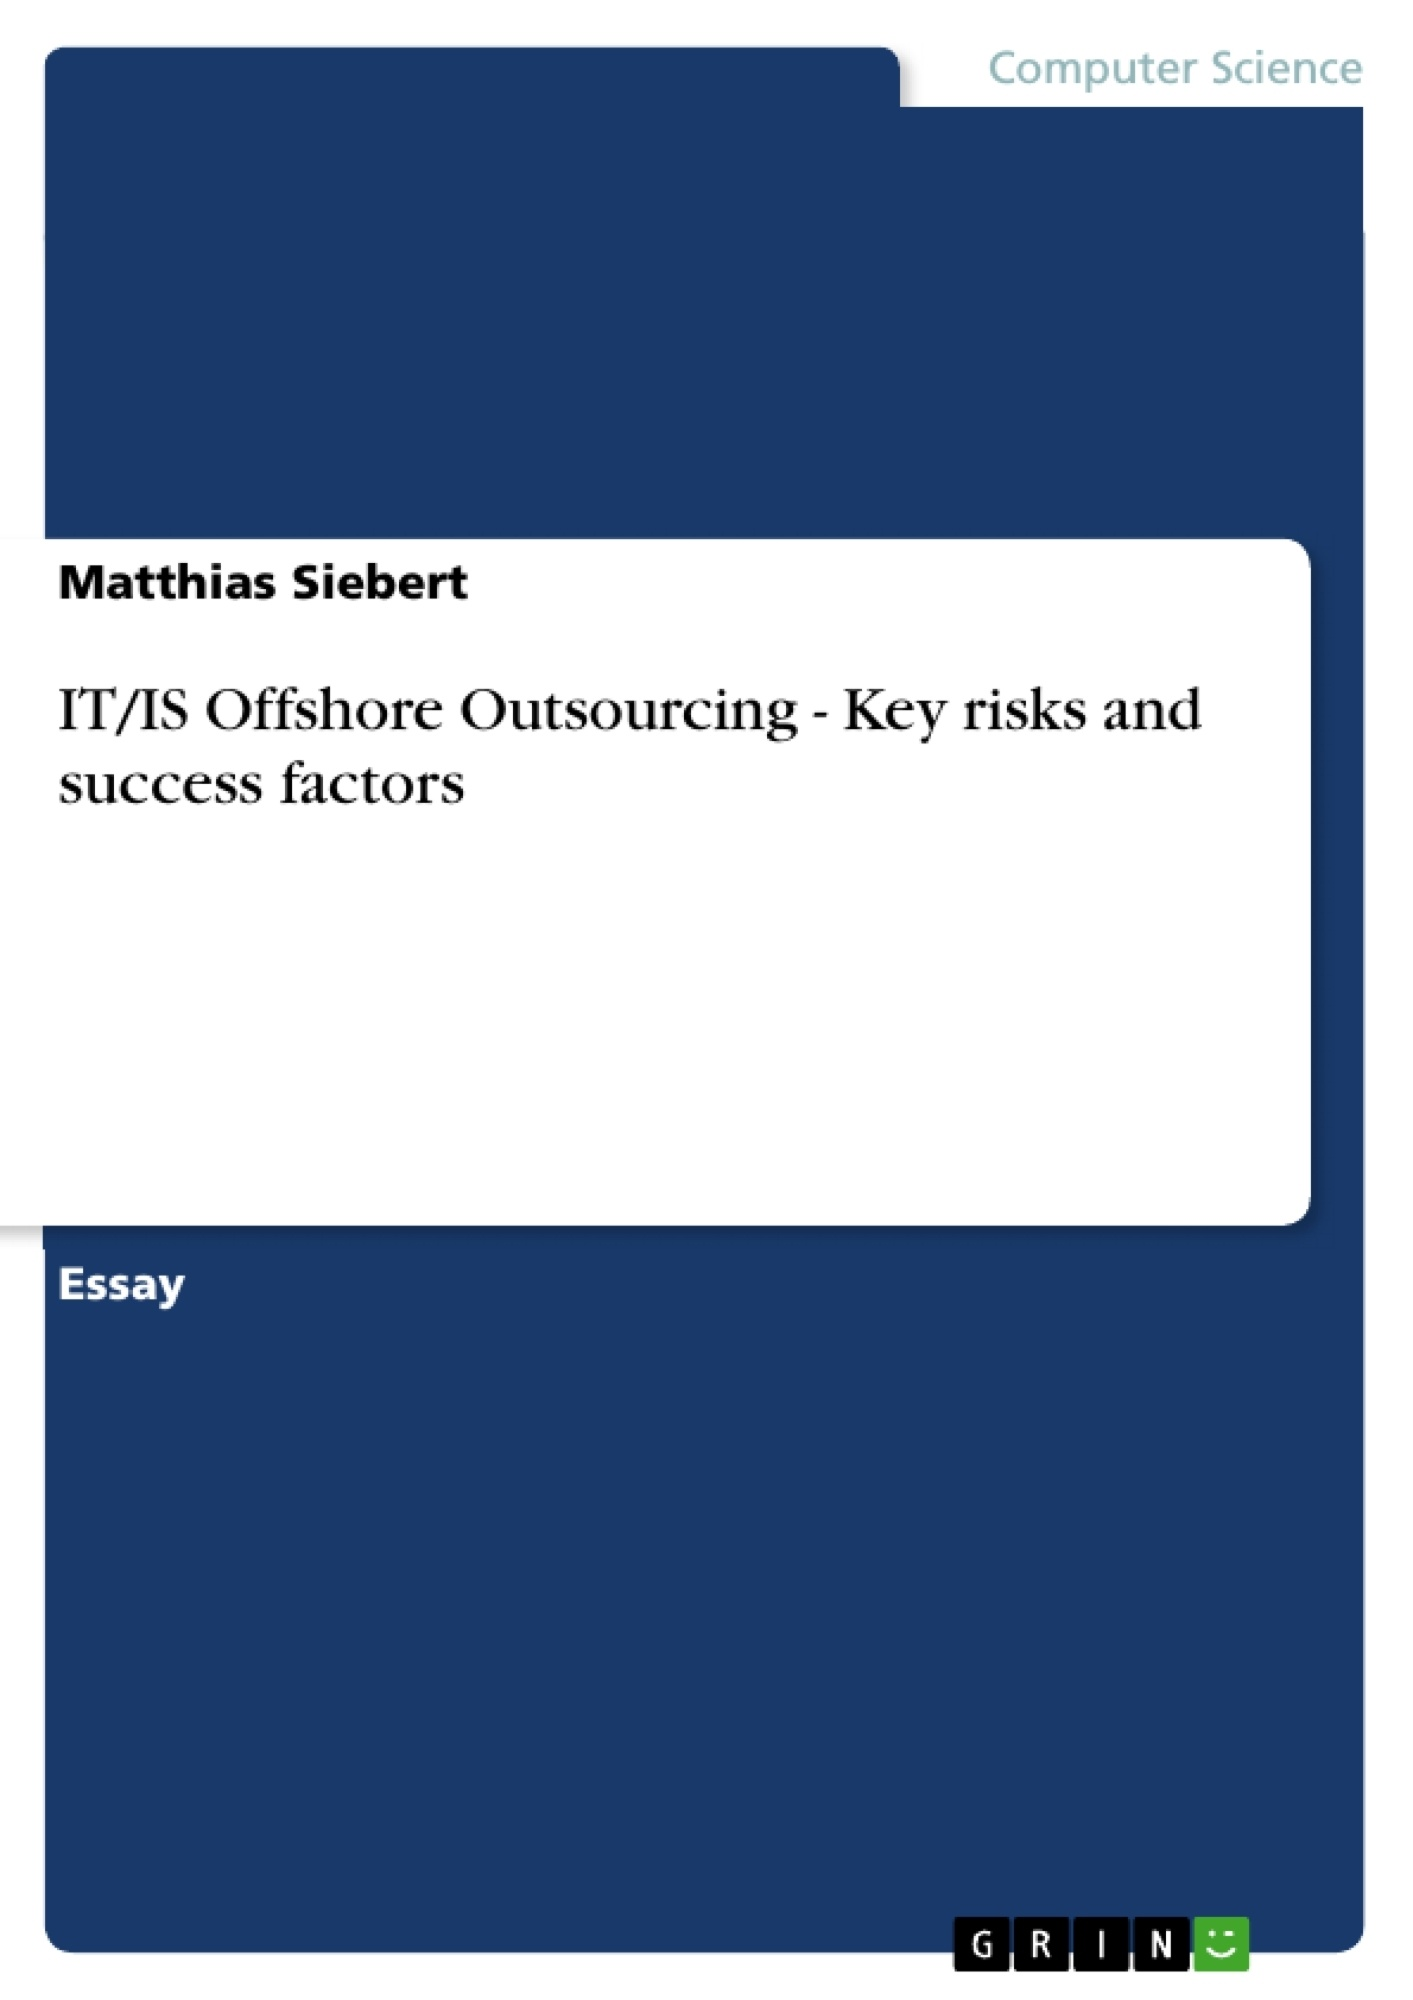 GRIN - IT/IS Offshore Outsourcing - Key risks and success factors